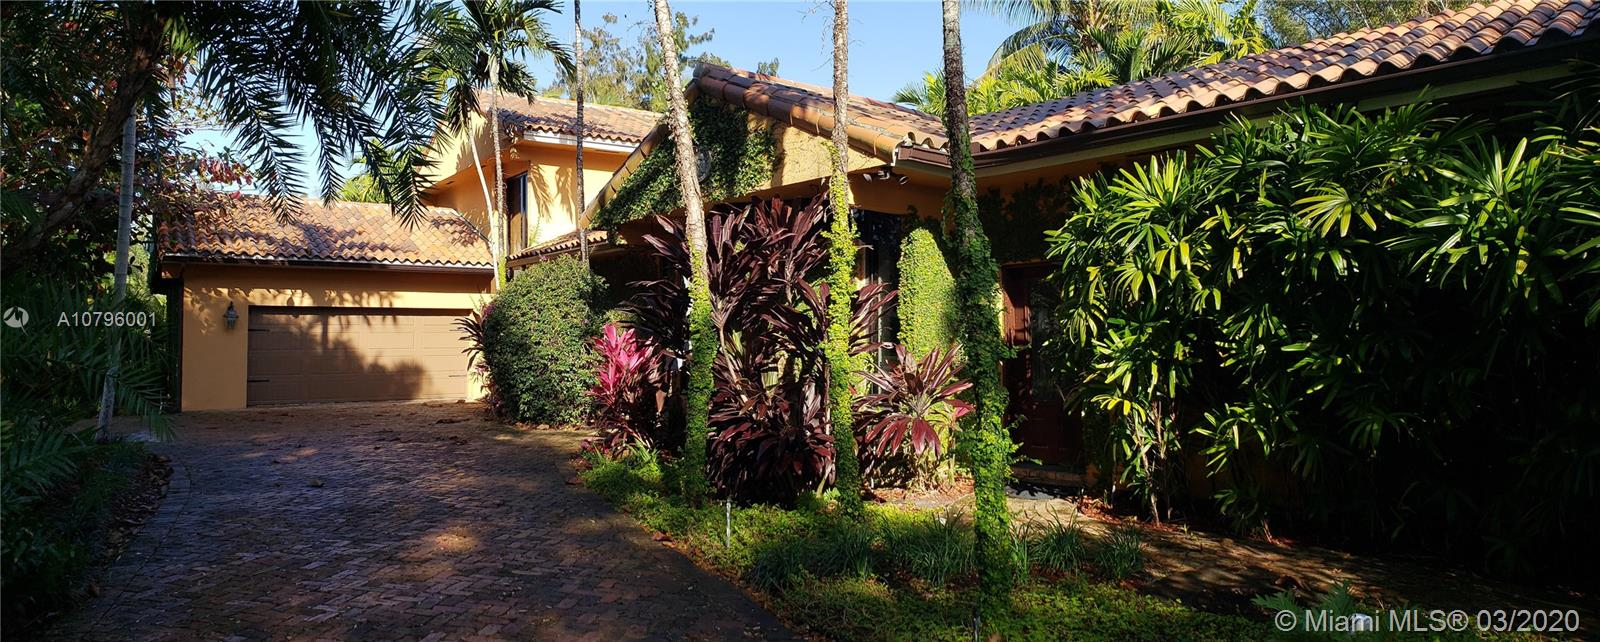 7201 SW 58th St  For Sale A10796001, FL